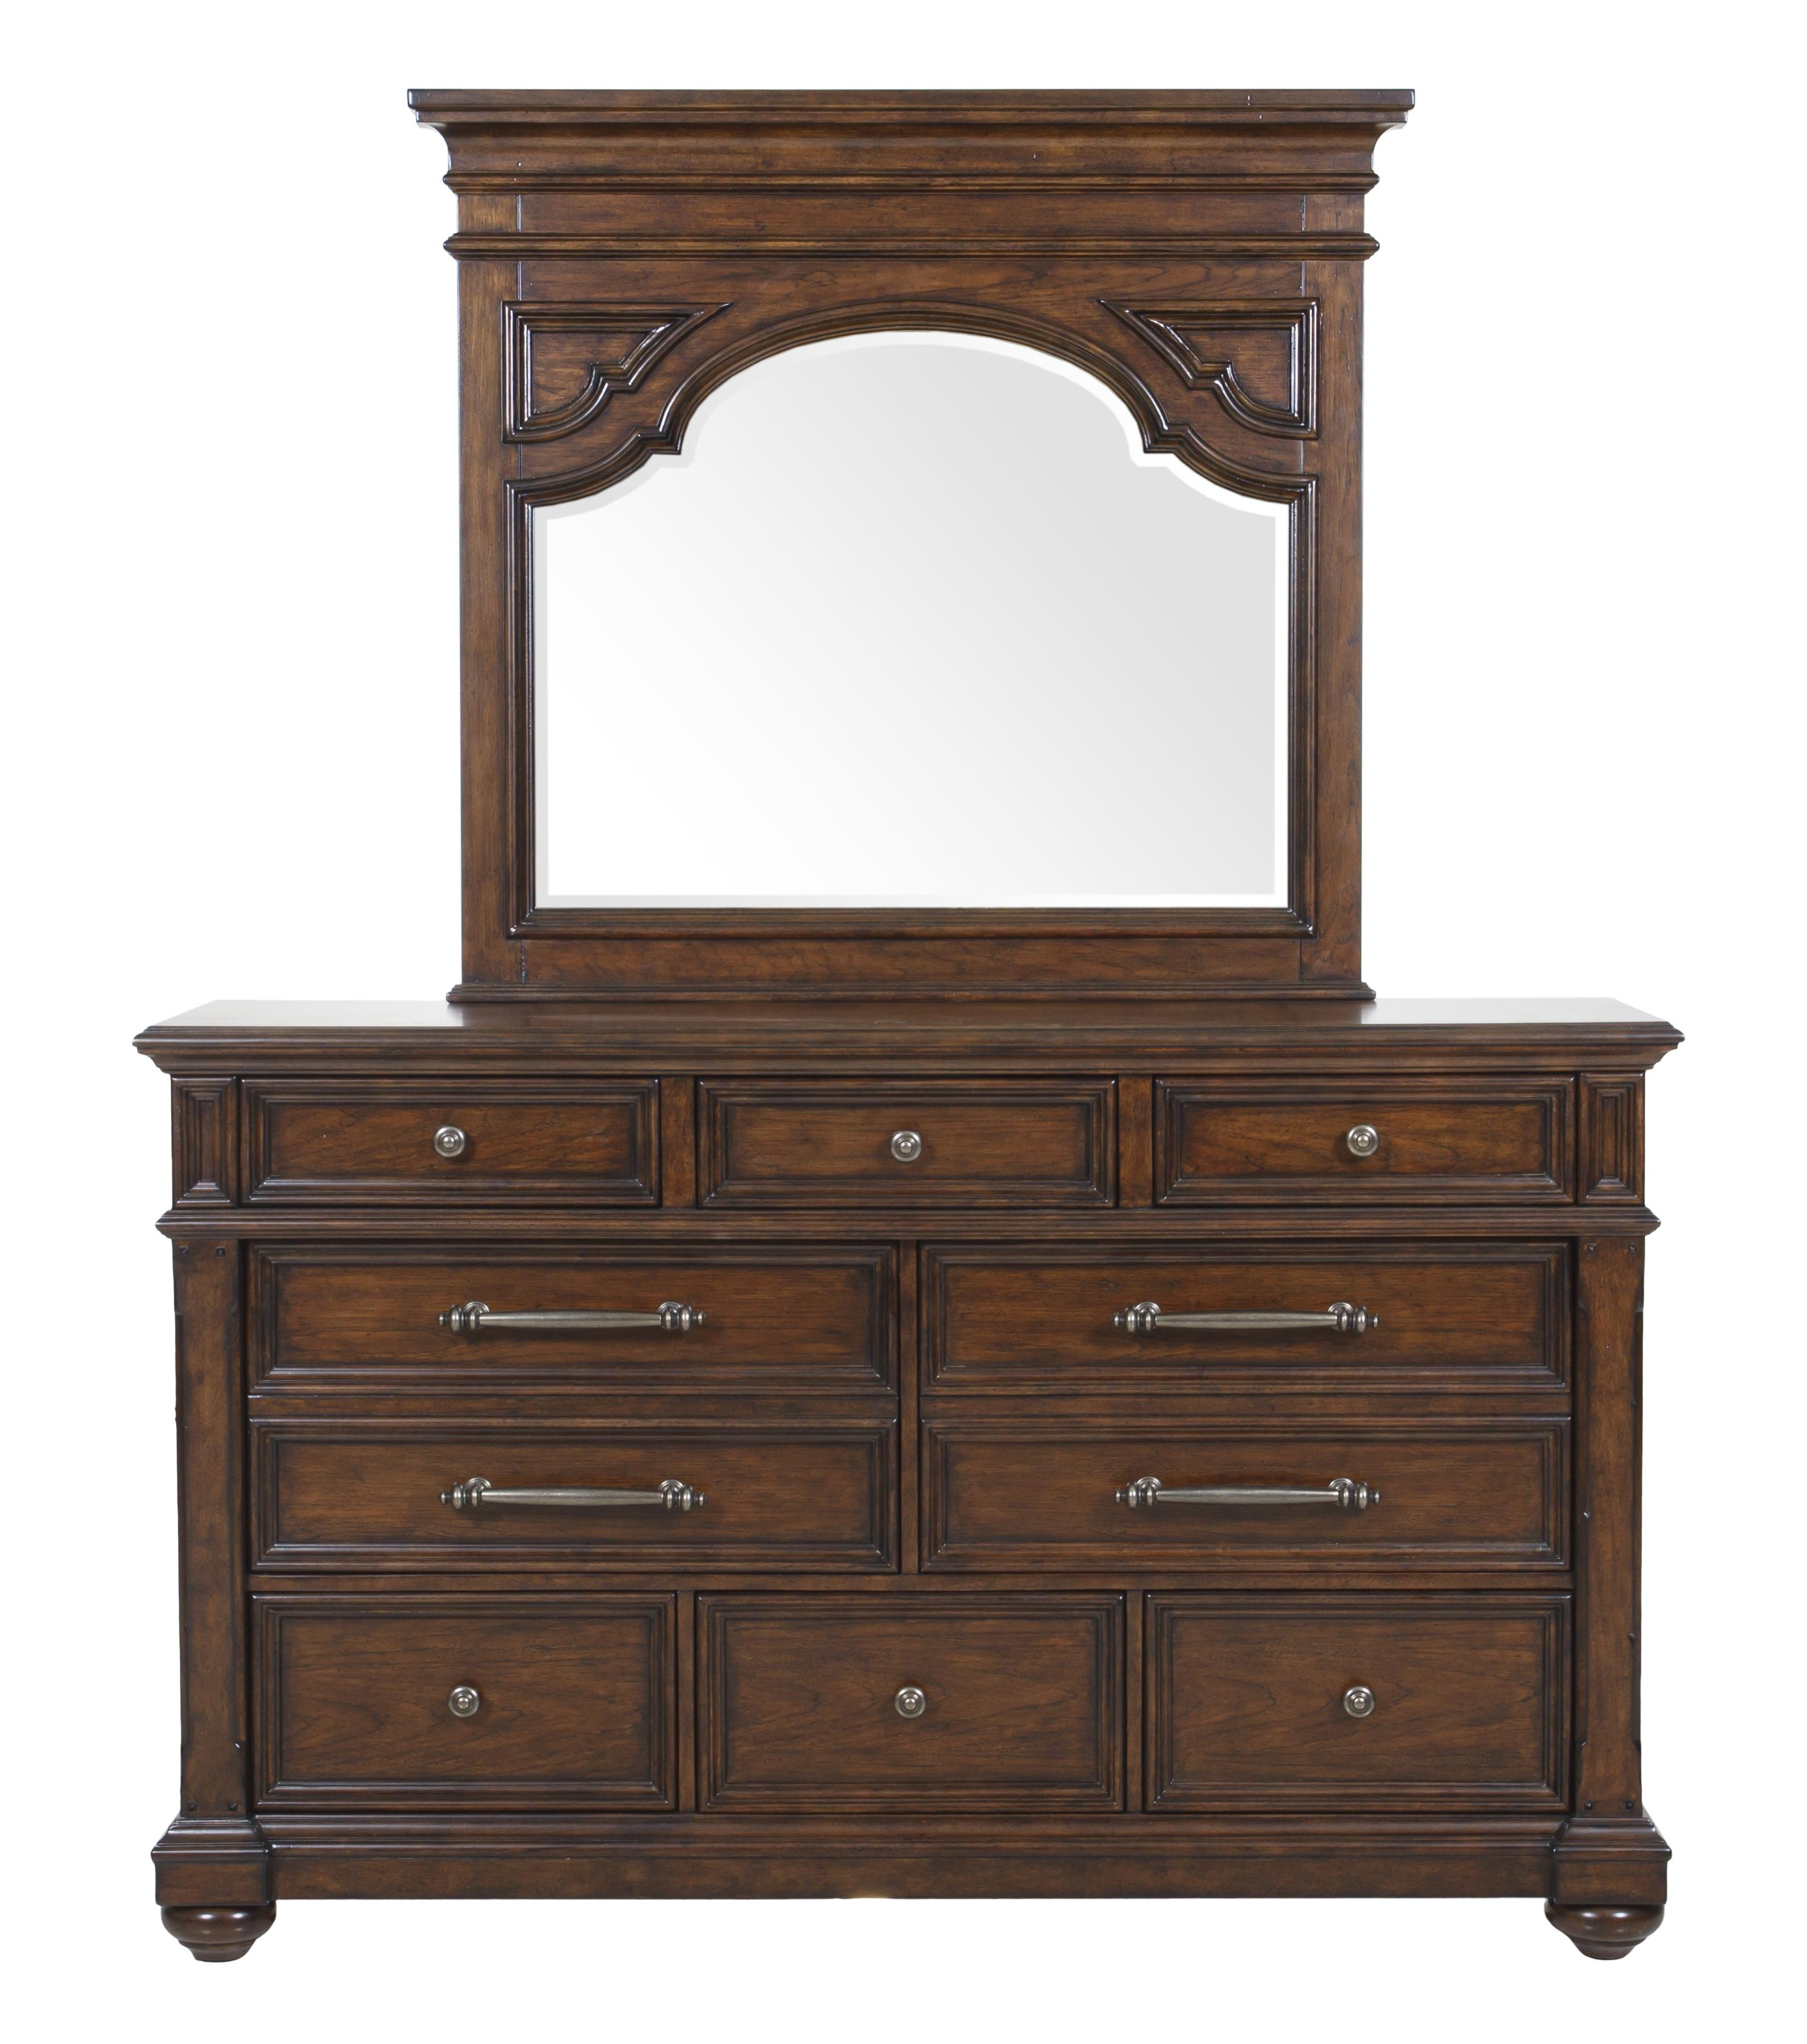 Pulaski Furniture Durango Ridge Dresser & Mirror Set - Item Number: 673100+10